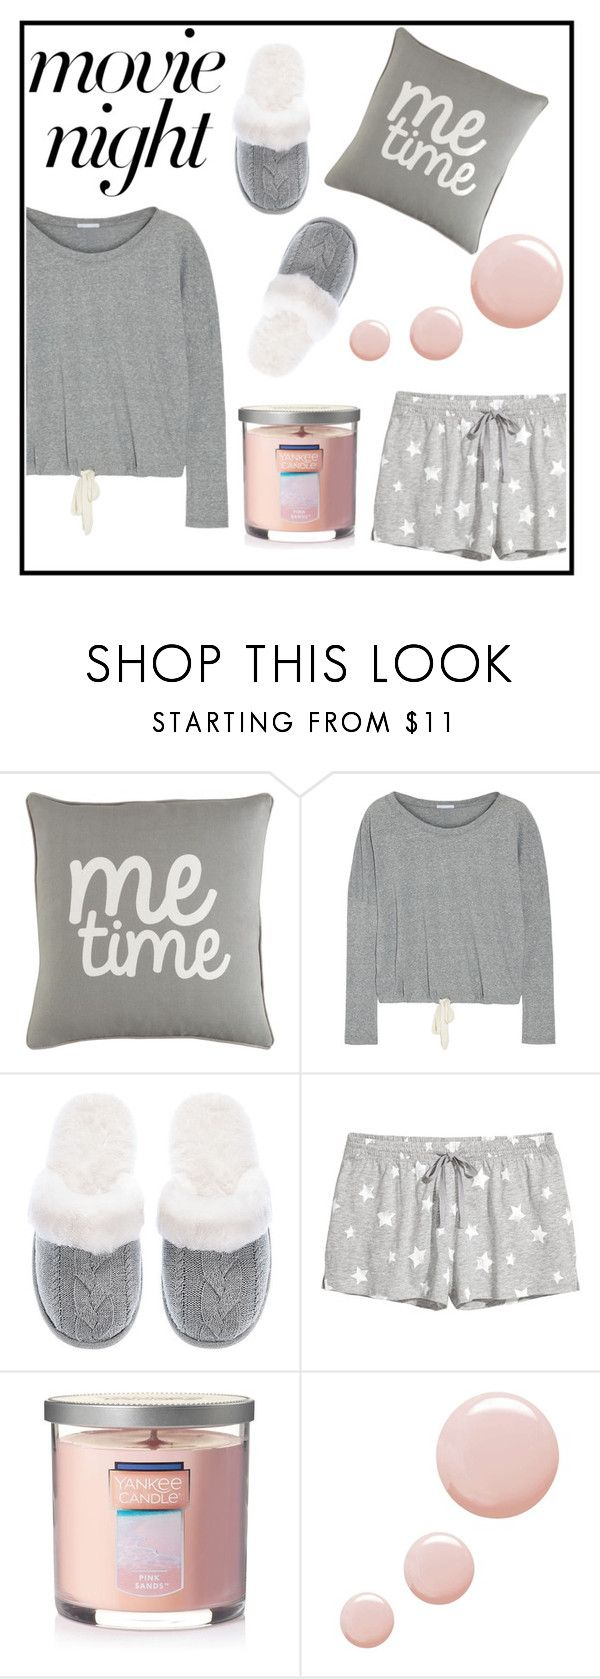 """""""Movie night"""" by diana16101993 ❤ liked on Polyvore featuring Surya, Eberjey, Victoria's Secret, Pijama, Yankee Candle and Topshop"""